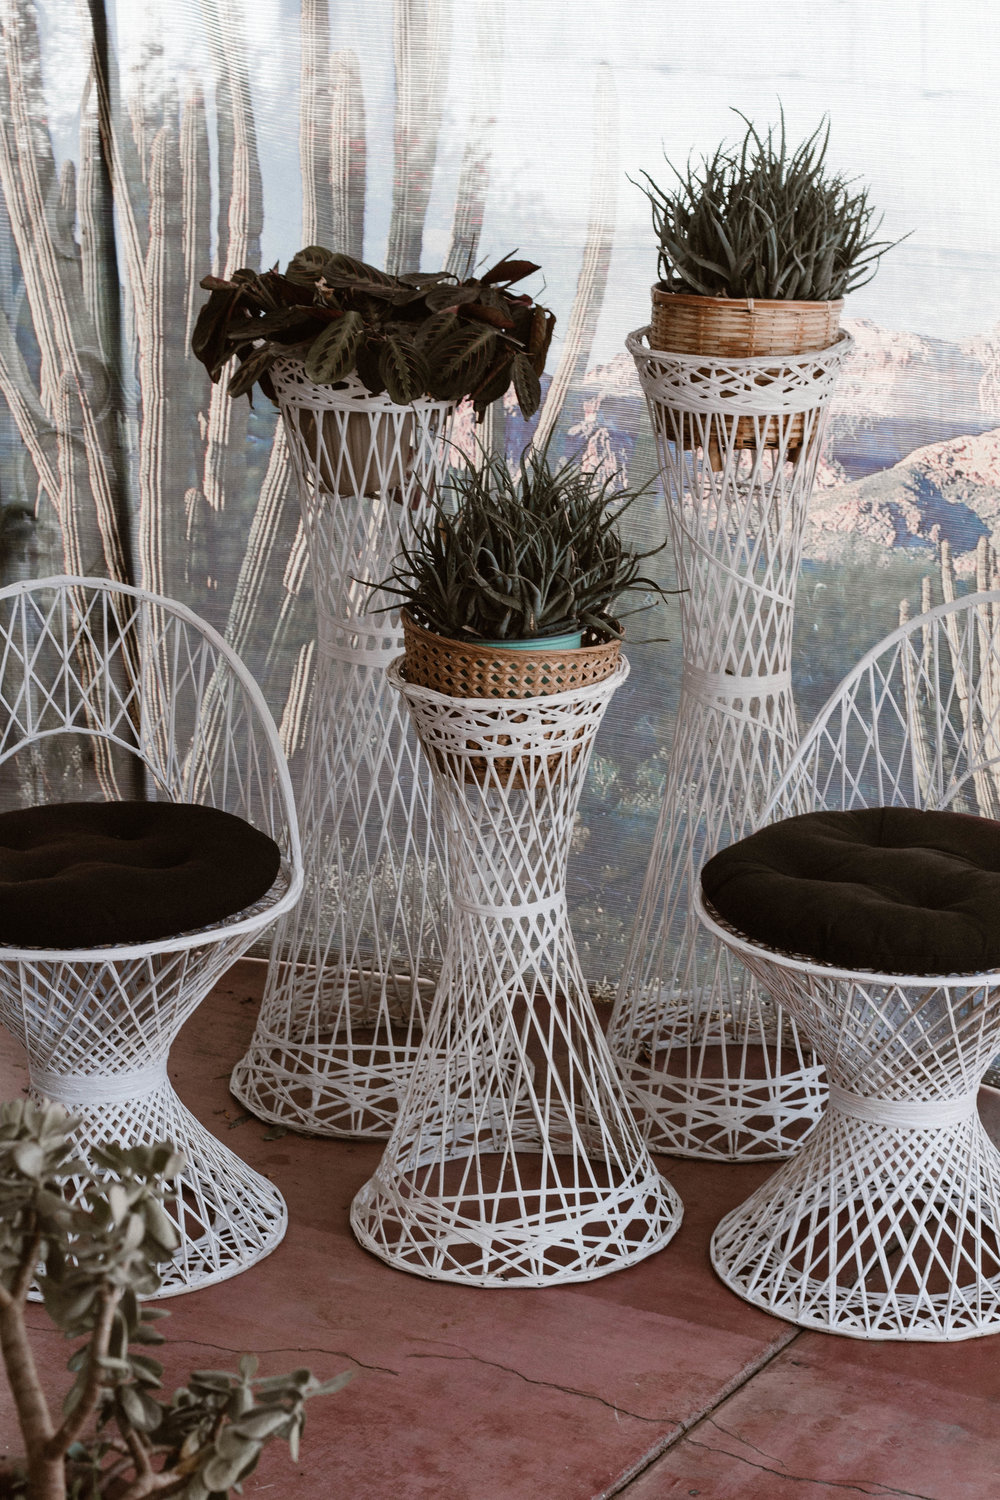 The Osmonds - (2) Spun fiberglass chairs and 3 matching plant stands. Chairs and plant stands may be rented seperately.